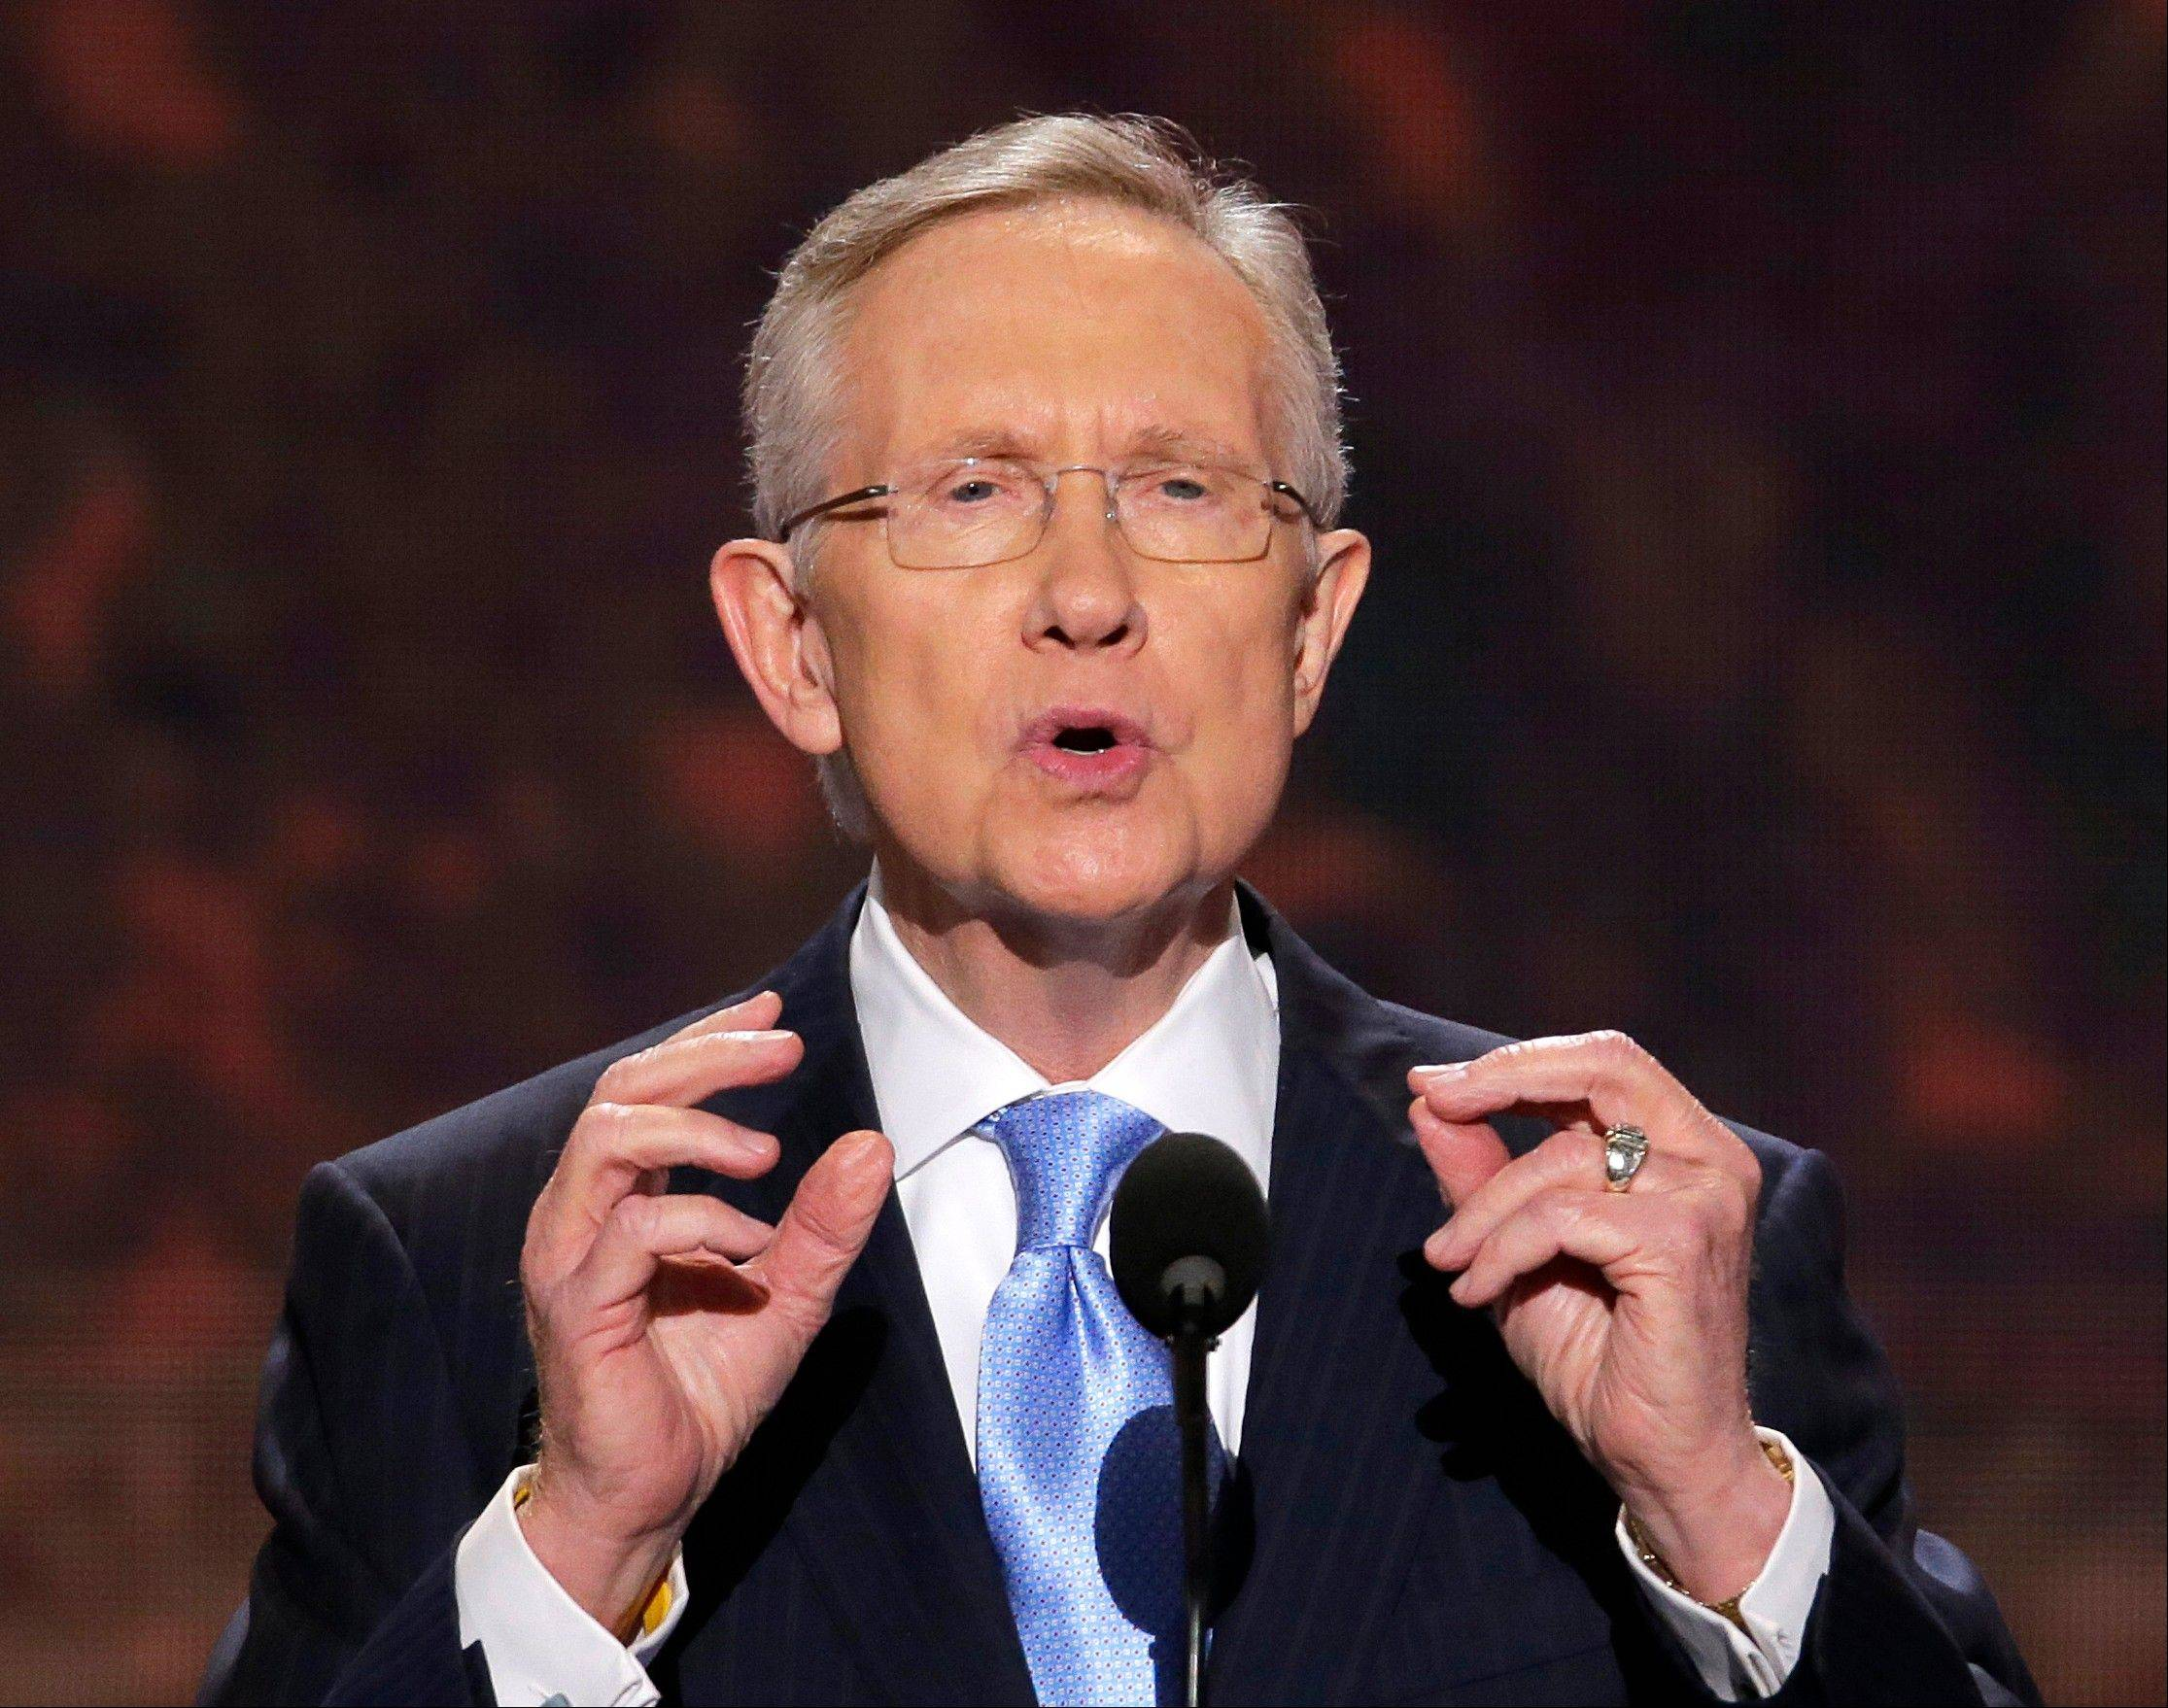 Associated Press/Sept. 4, 2012 Senate Majority Leader Harry Reid of Nevada addresses the Democratic National Convention in Charlotte, N.C. Troopers say Reid has been taken to the hospital after what appears to be a rear-end crash on an interstate through Las Vegas.